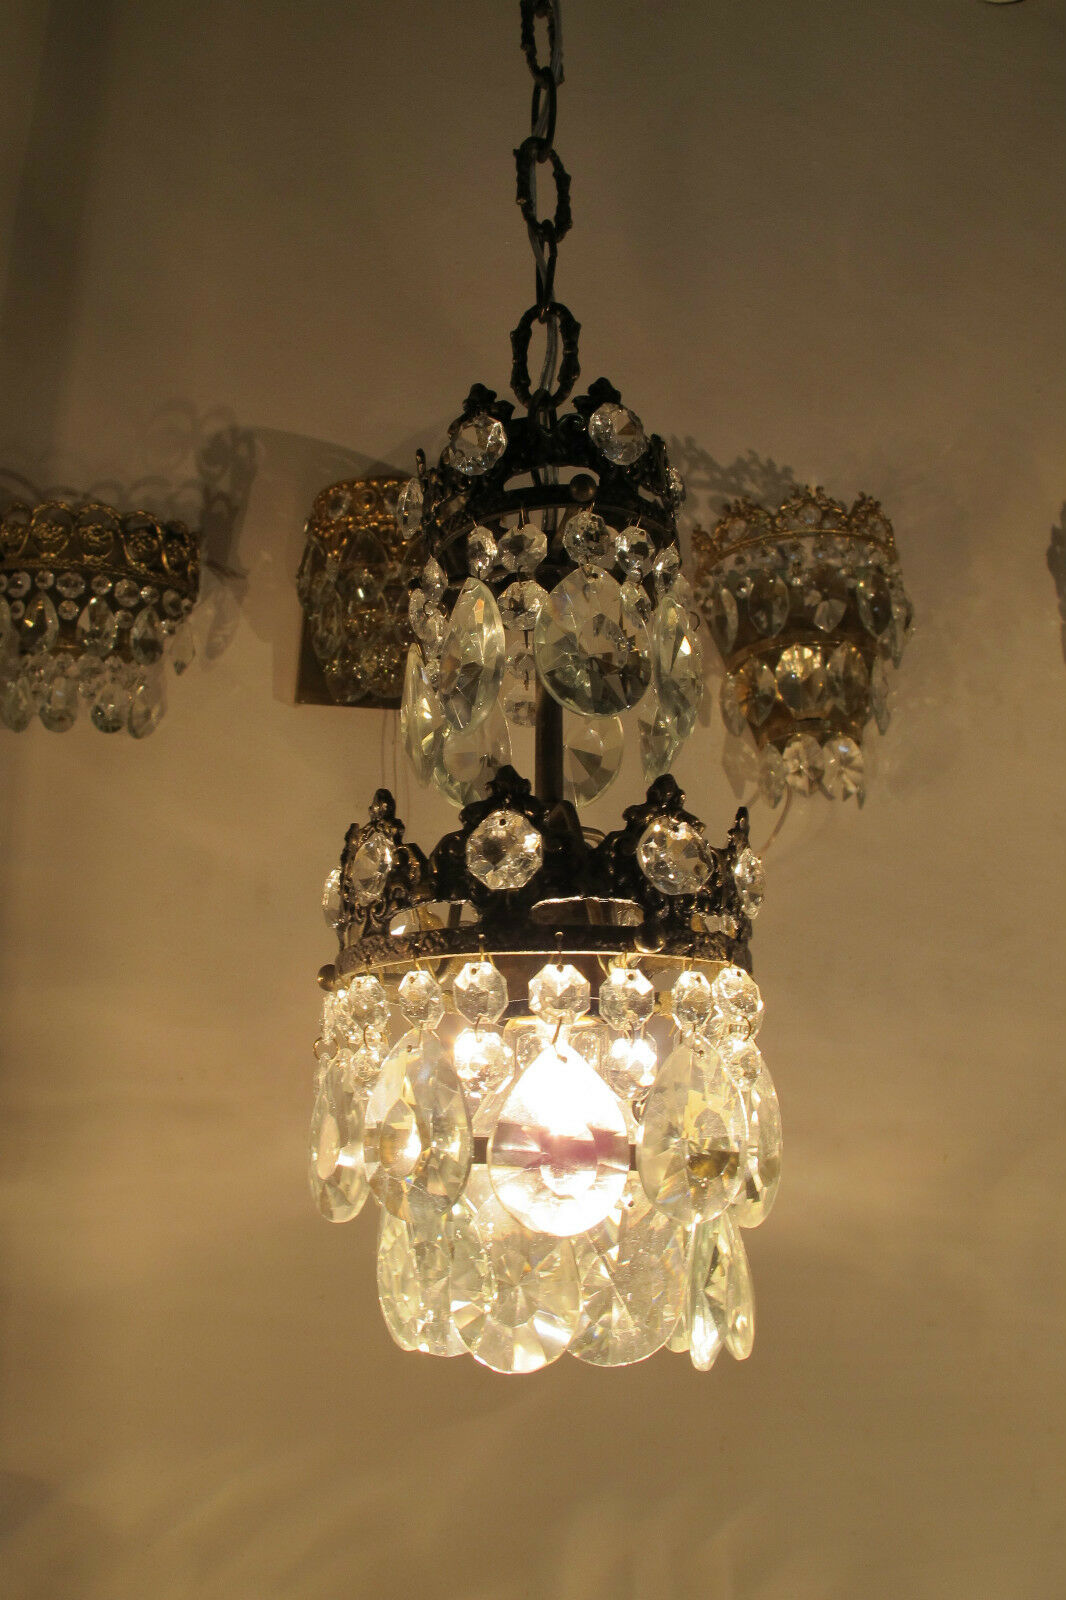 Antique French Basket Style Small Crystal Chandelier Lamp Light 1940's--